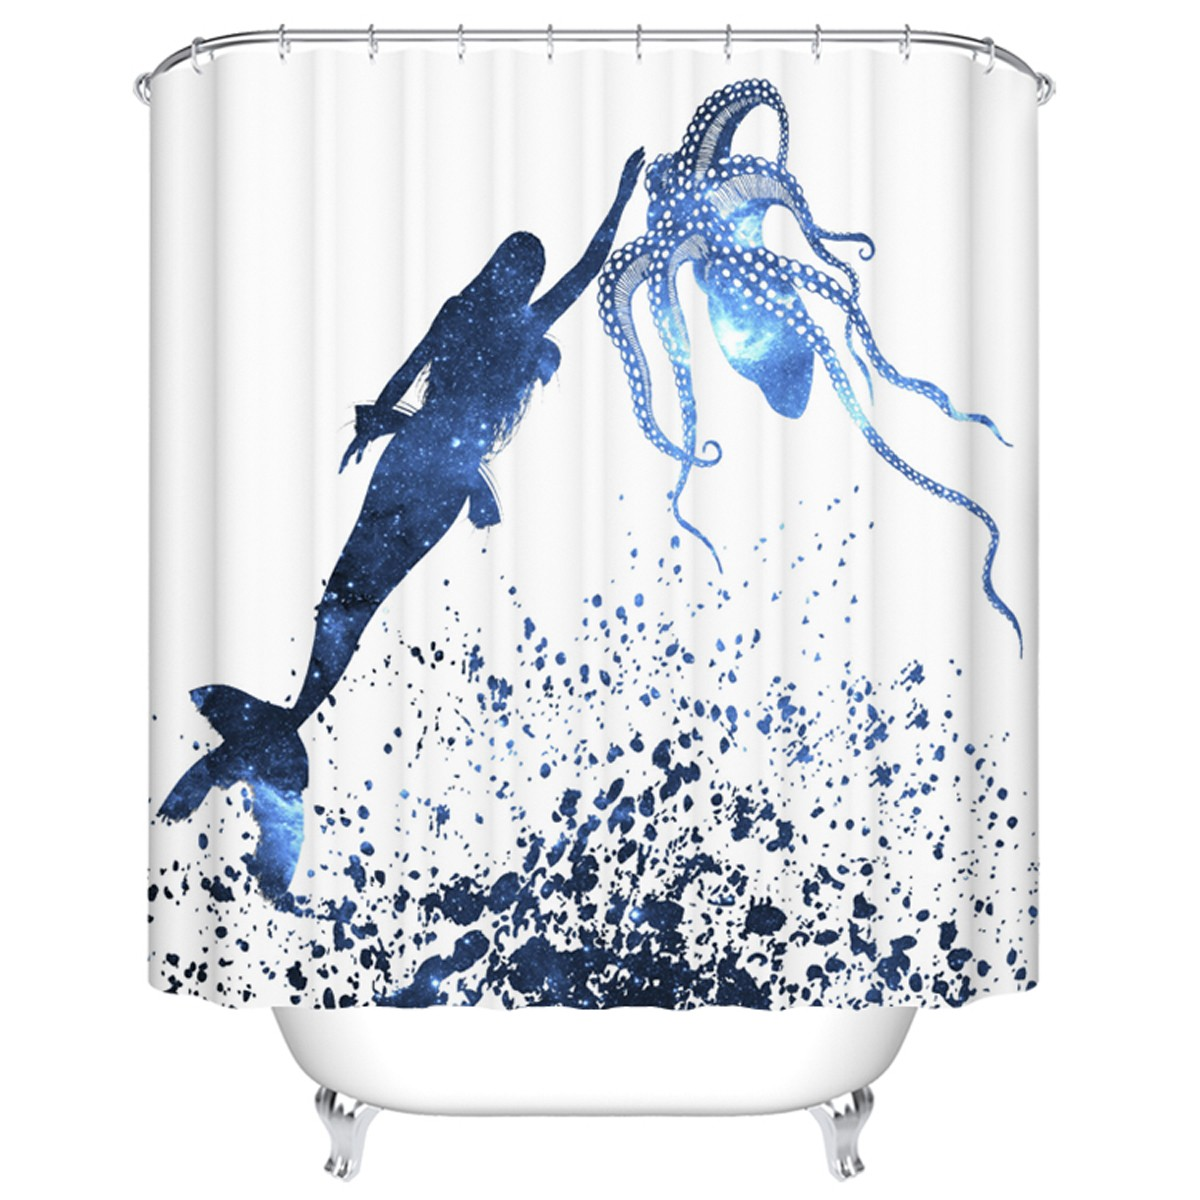 "Fashionable Bathroom Waterproof Shower Curtain, 70"" W x 72"" H (DK-YT017)"